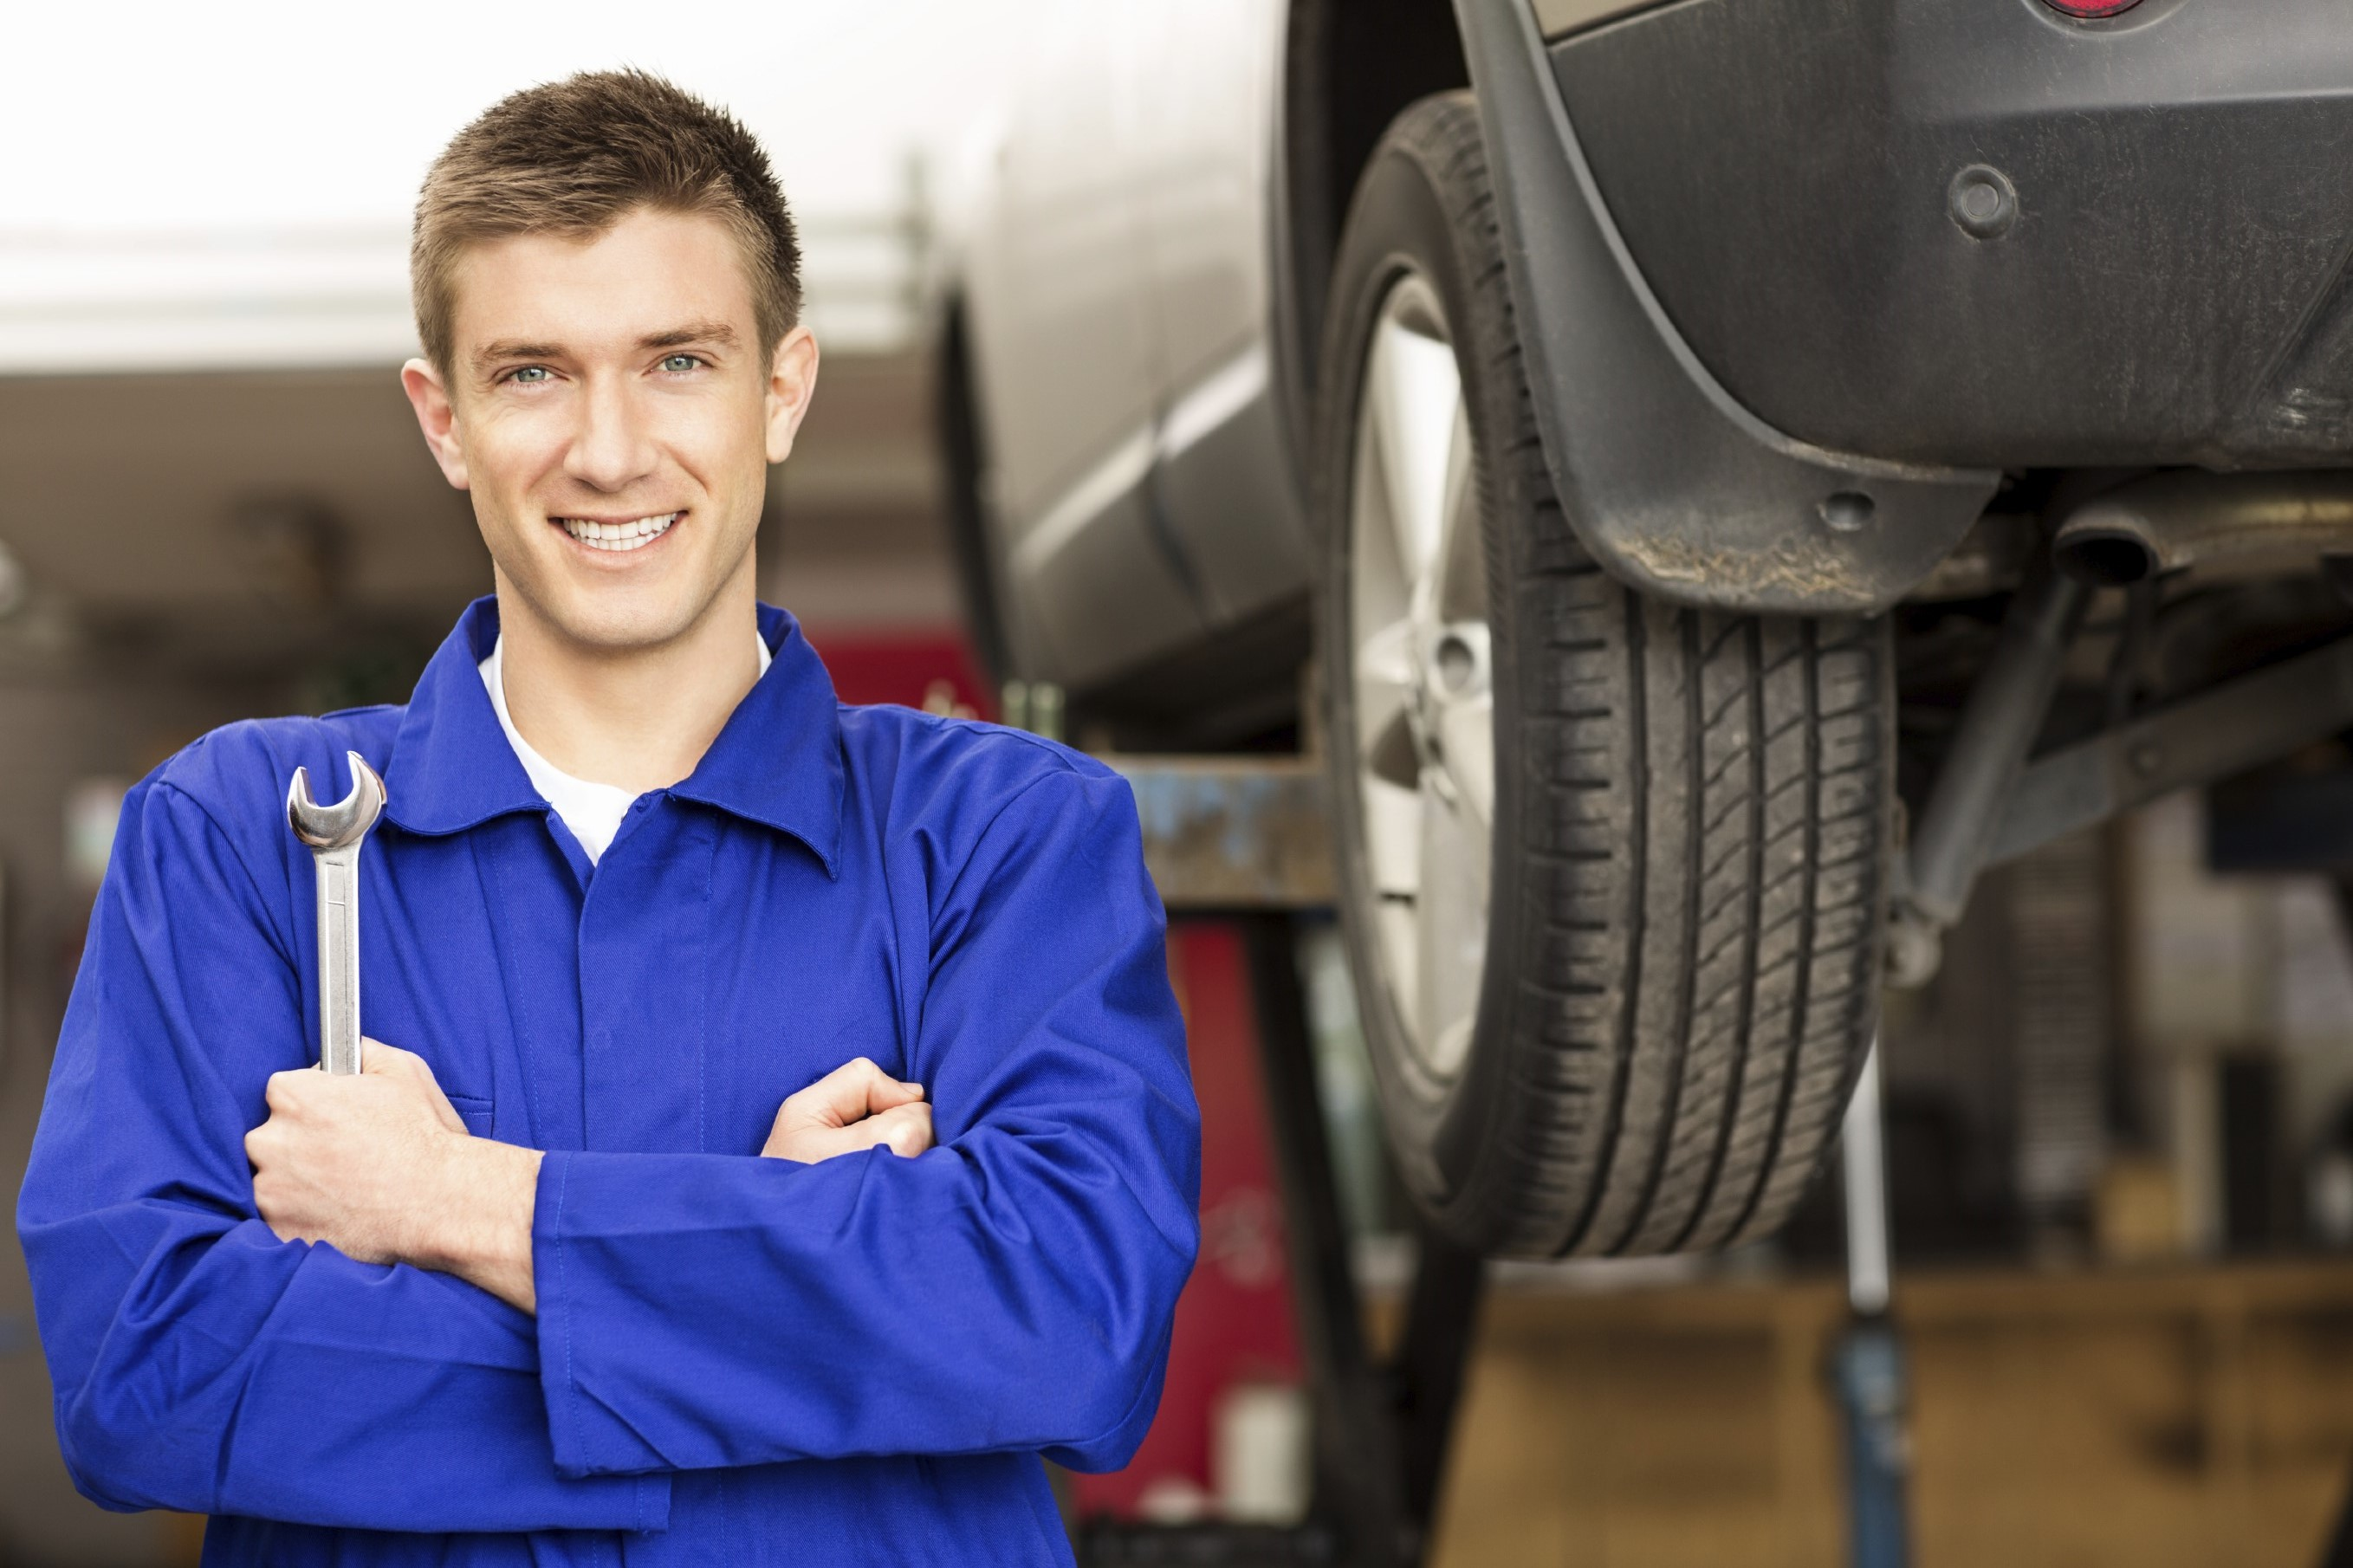 Oil Change Service near Smithtown, NY